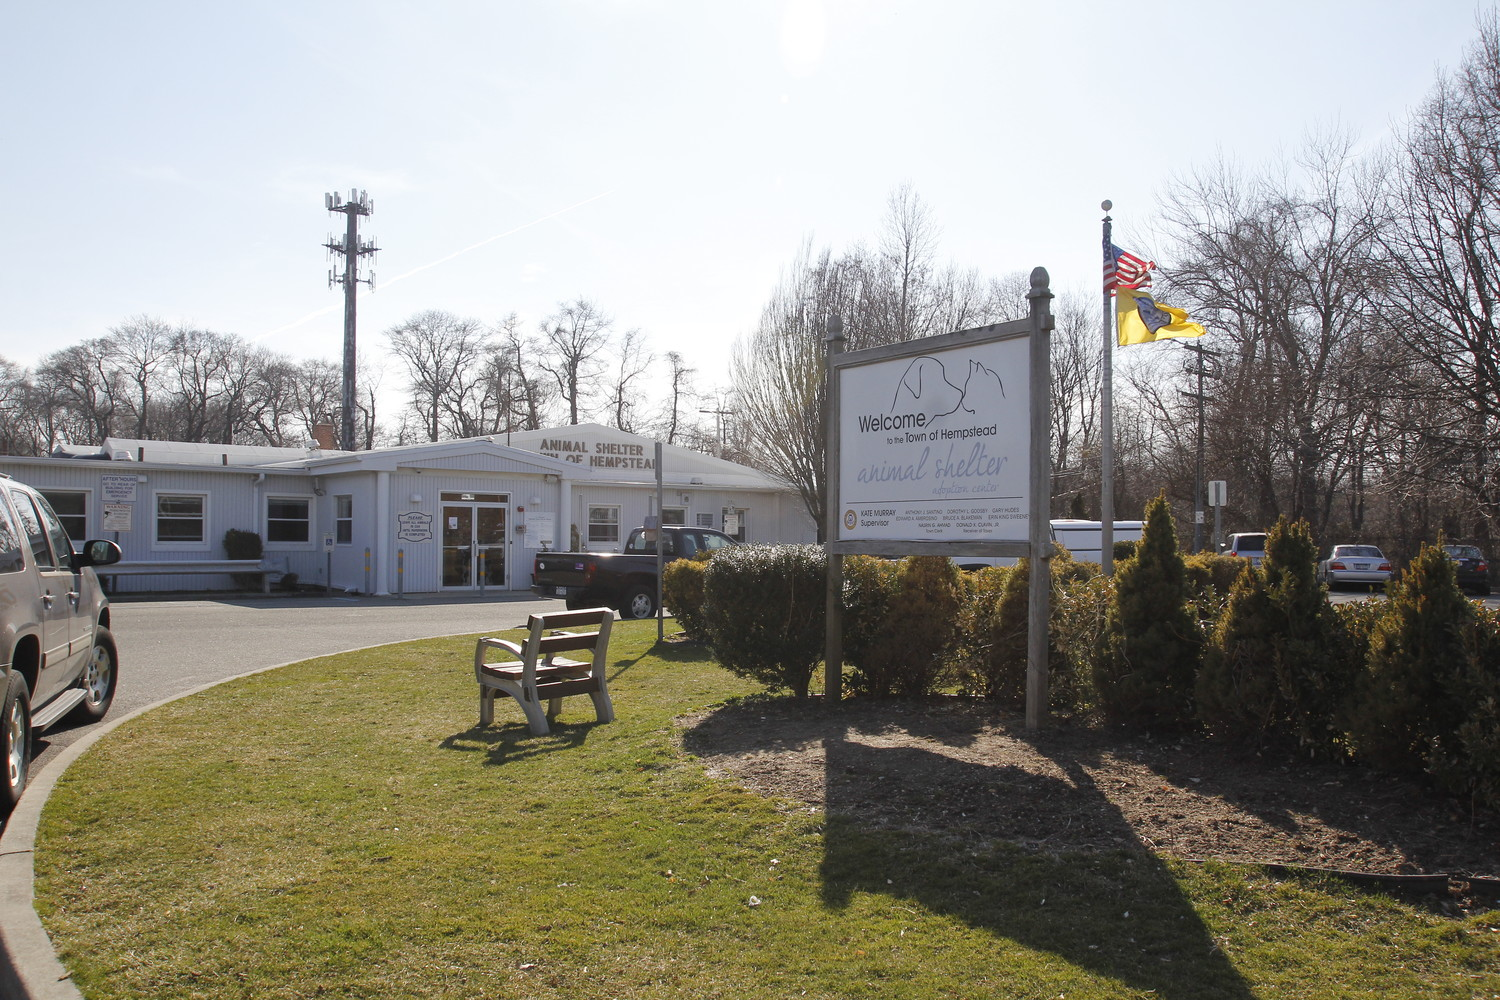 Nassau County Comptroller Jack Schnirman last week began an audit of the embattled Hempstead Animal Shelter, including its personnel and finances.